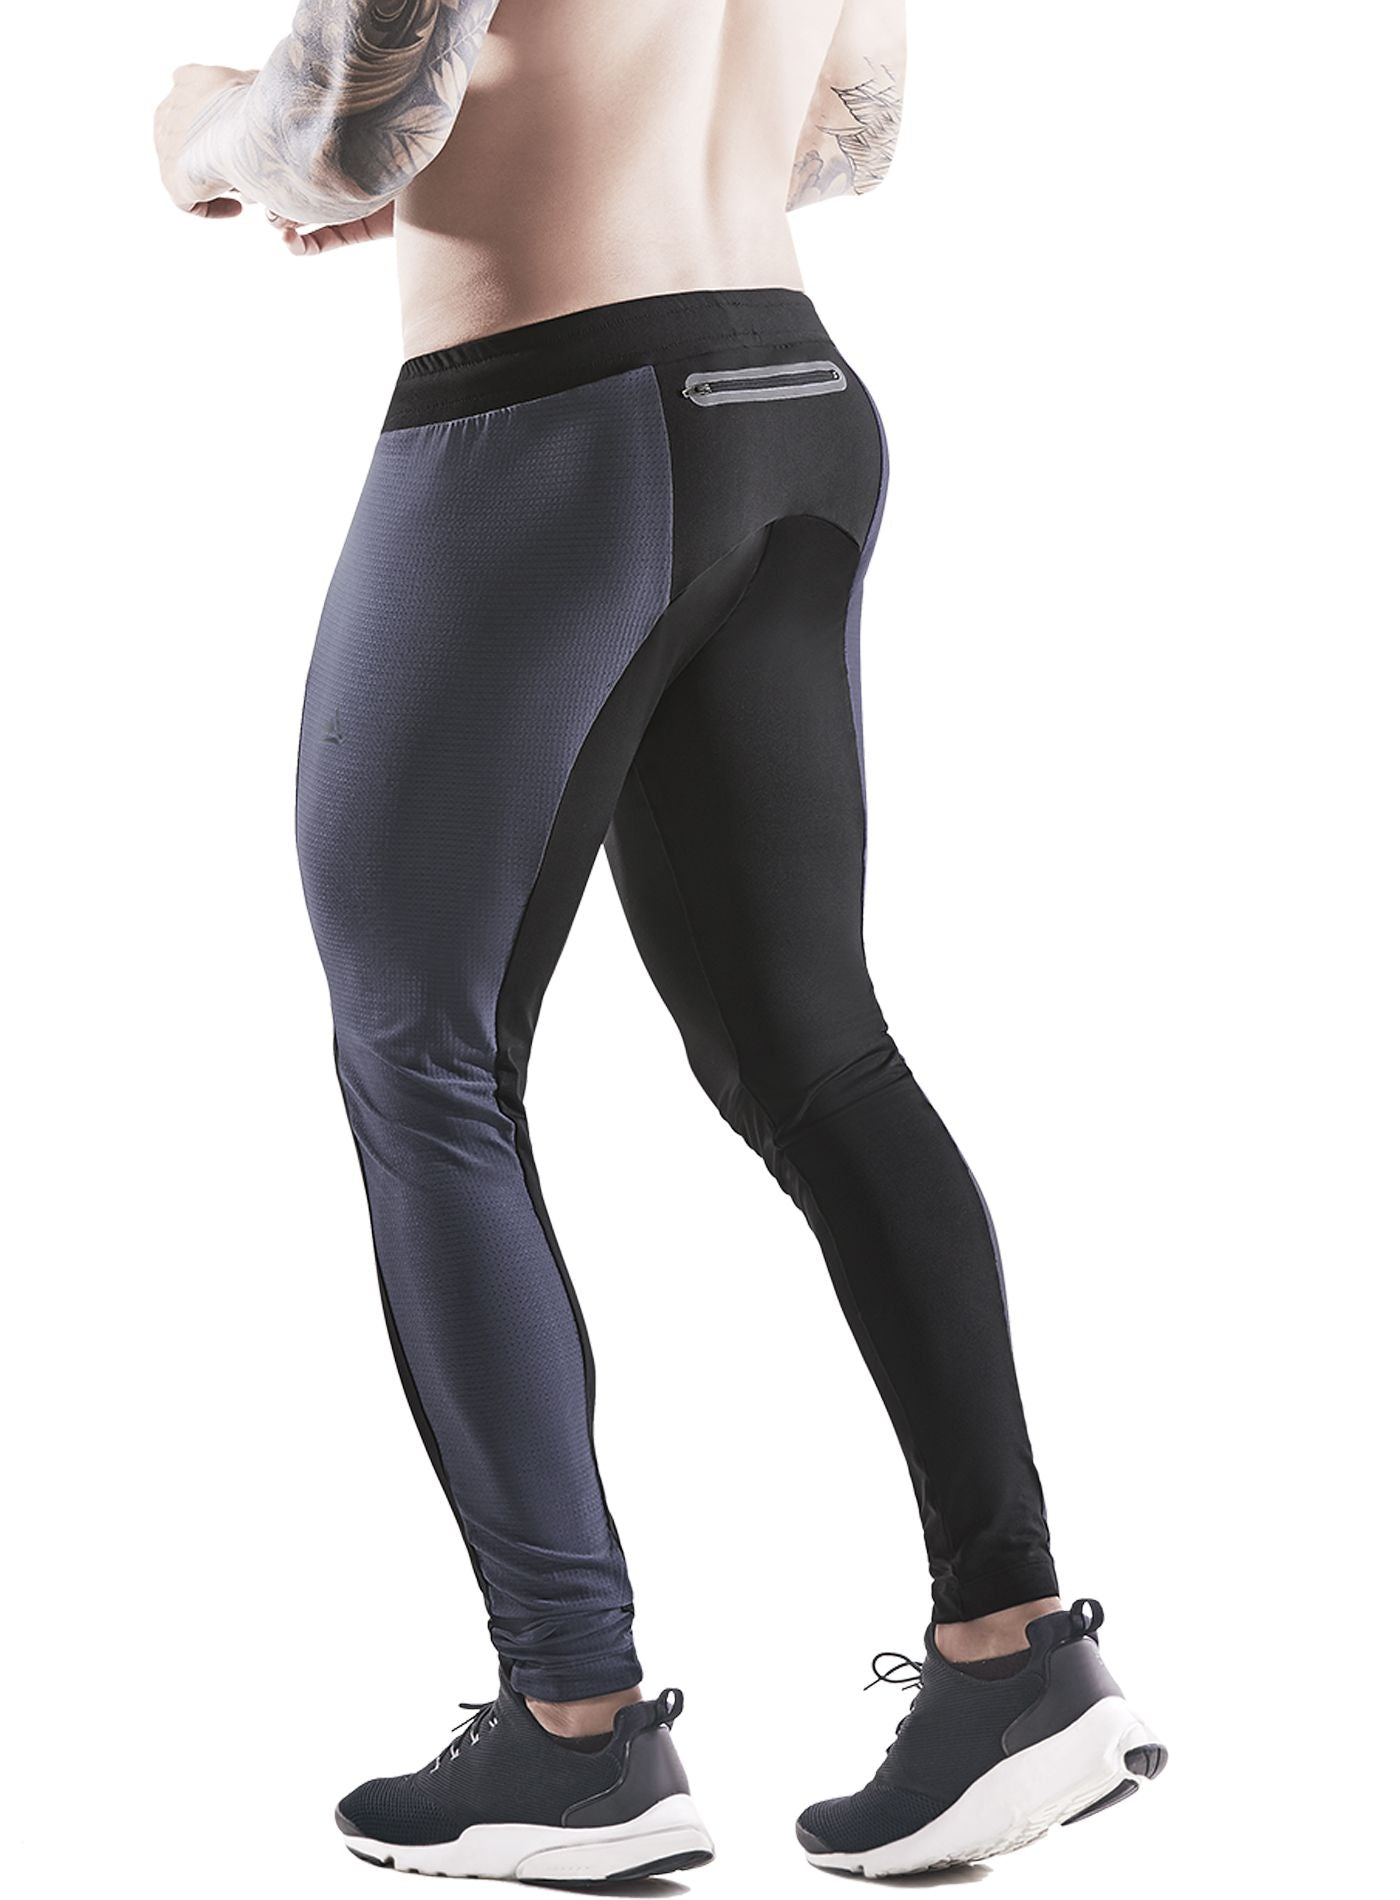 POLYESTER SPORT PANT SIZE S-M-L-XL Ref. 81926